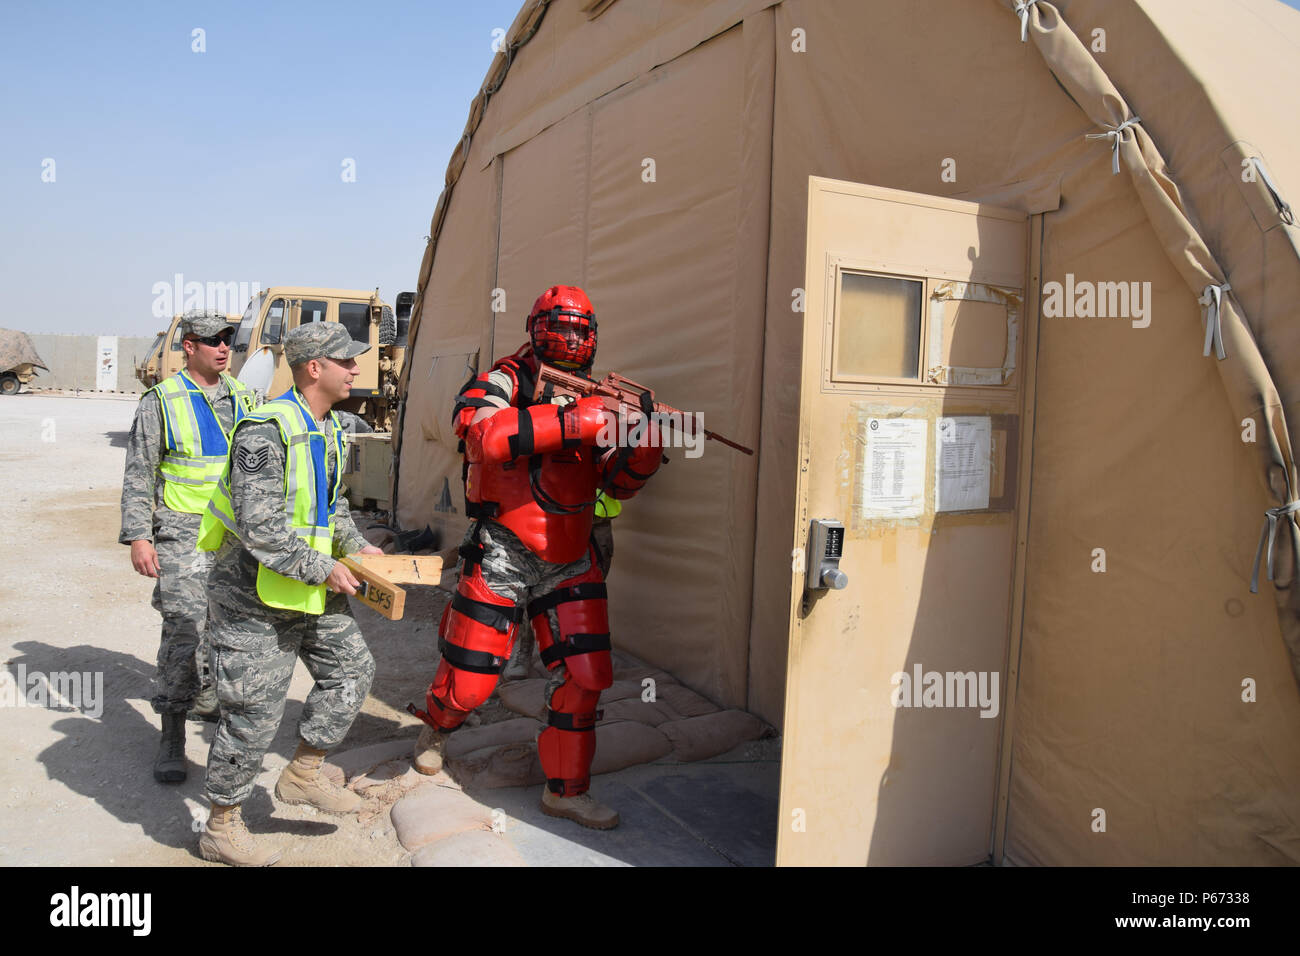 Tech. Sgt. Shawn Rankins, 379th Expeditionary Security Forces Squadron Check Six Team, begins an active shooter exercise with Army Soldiers May 5, 2016, at Al Udeid Air Base, Qatar. Staff Sgt. Joseph Brock, also from the 379th ESFS,  portrayed the shooter and wore a red padded suit to protect himself from Soldiers' physical retaliation as Tech. Sgt. Scott Carpenter, 379th ESFS, strikes two pieces of wood together to simulate gun shots. Check Six teaches Airmen to be aware of their surroundings at all times, and most importantly how to defend themselves and others in the event a hostile threat  - Stock Image